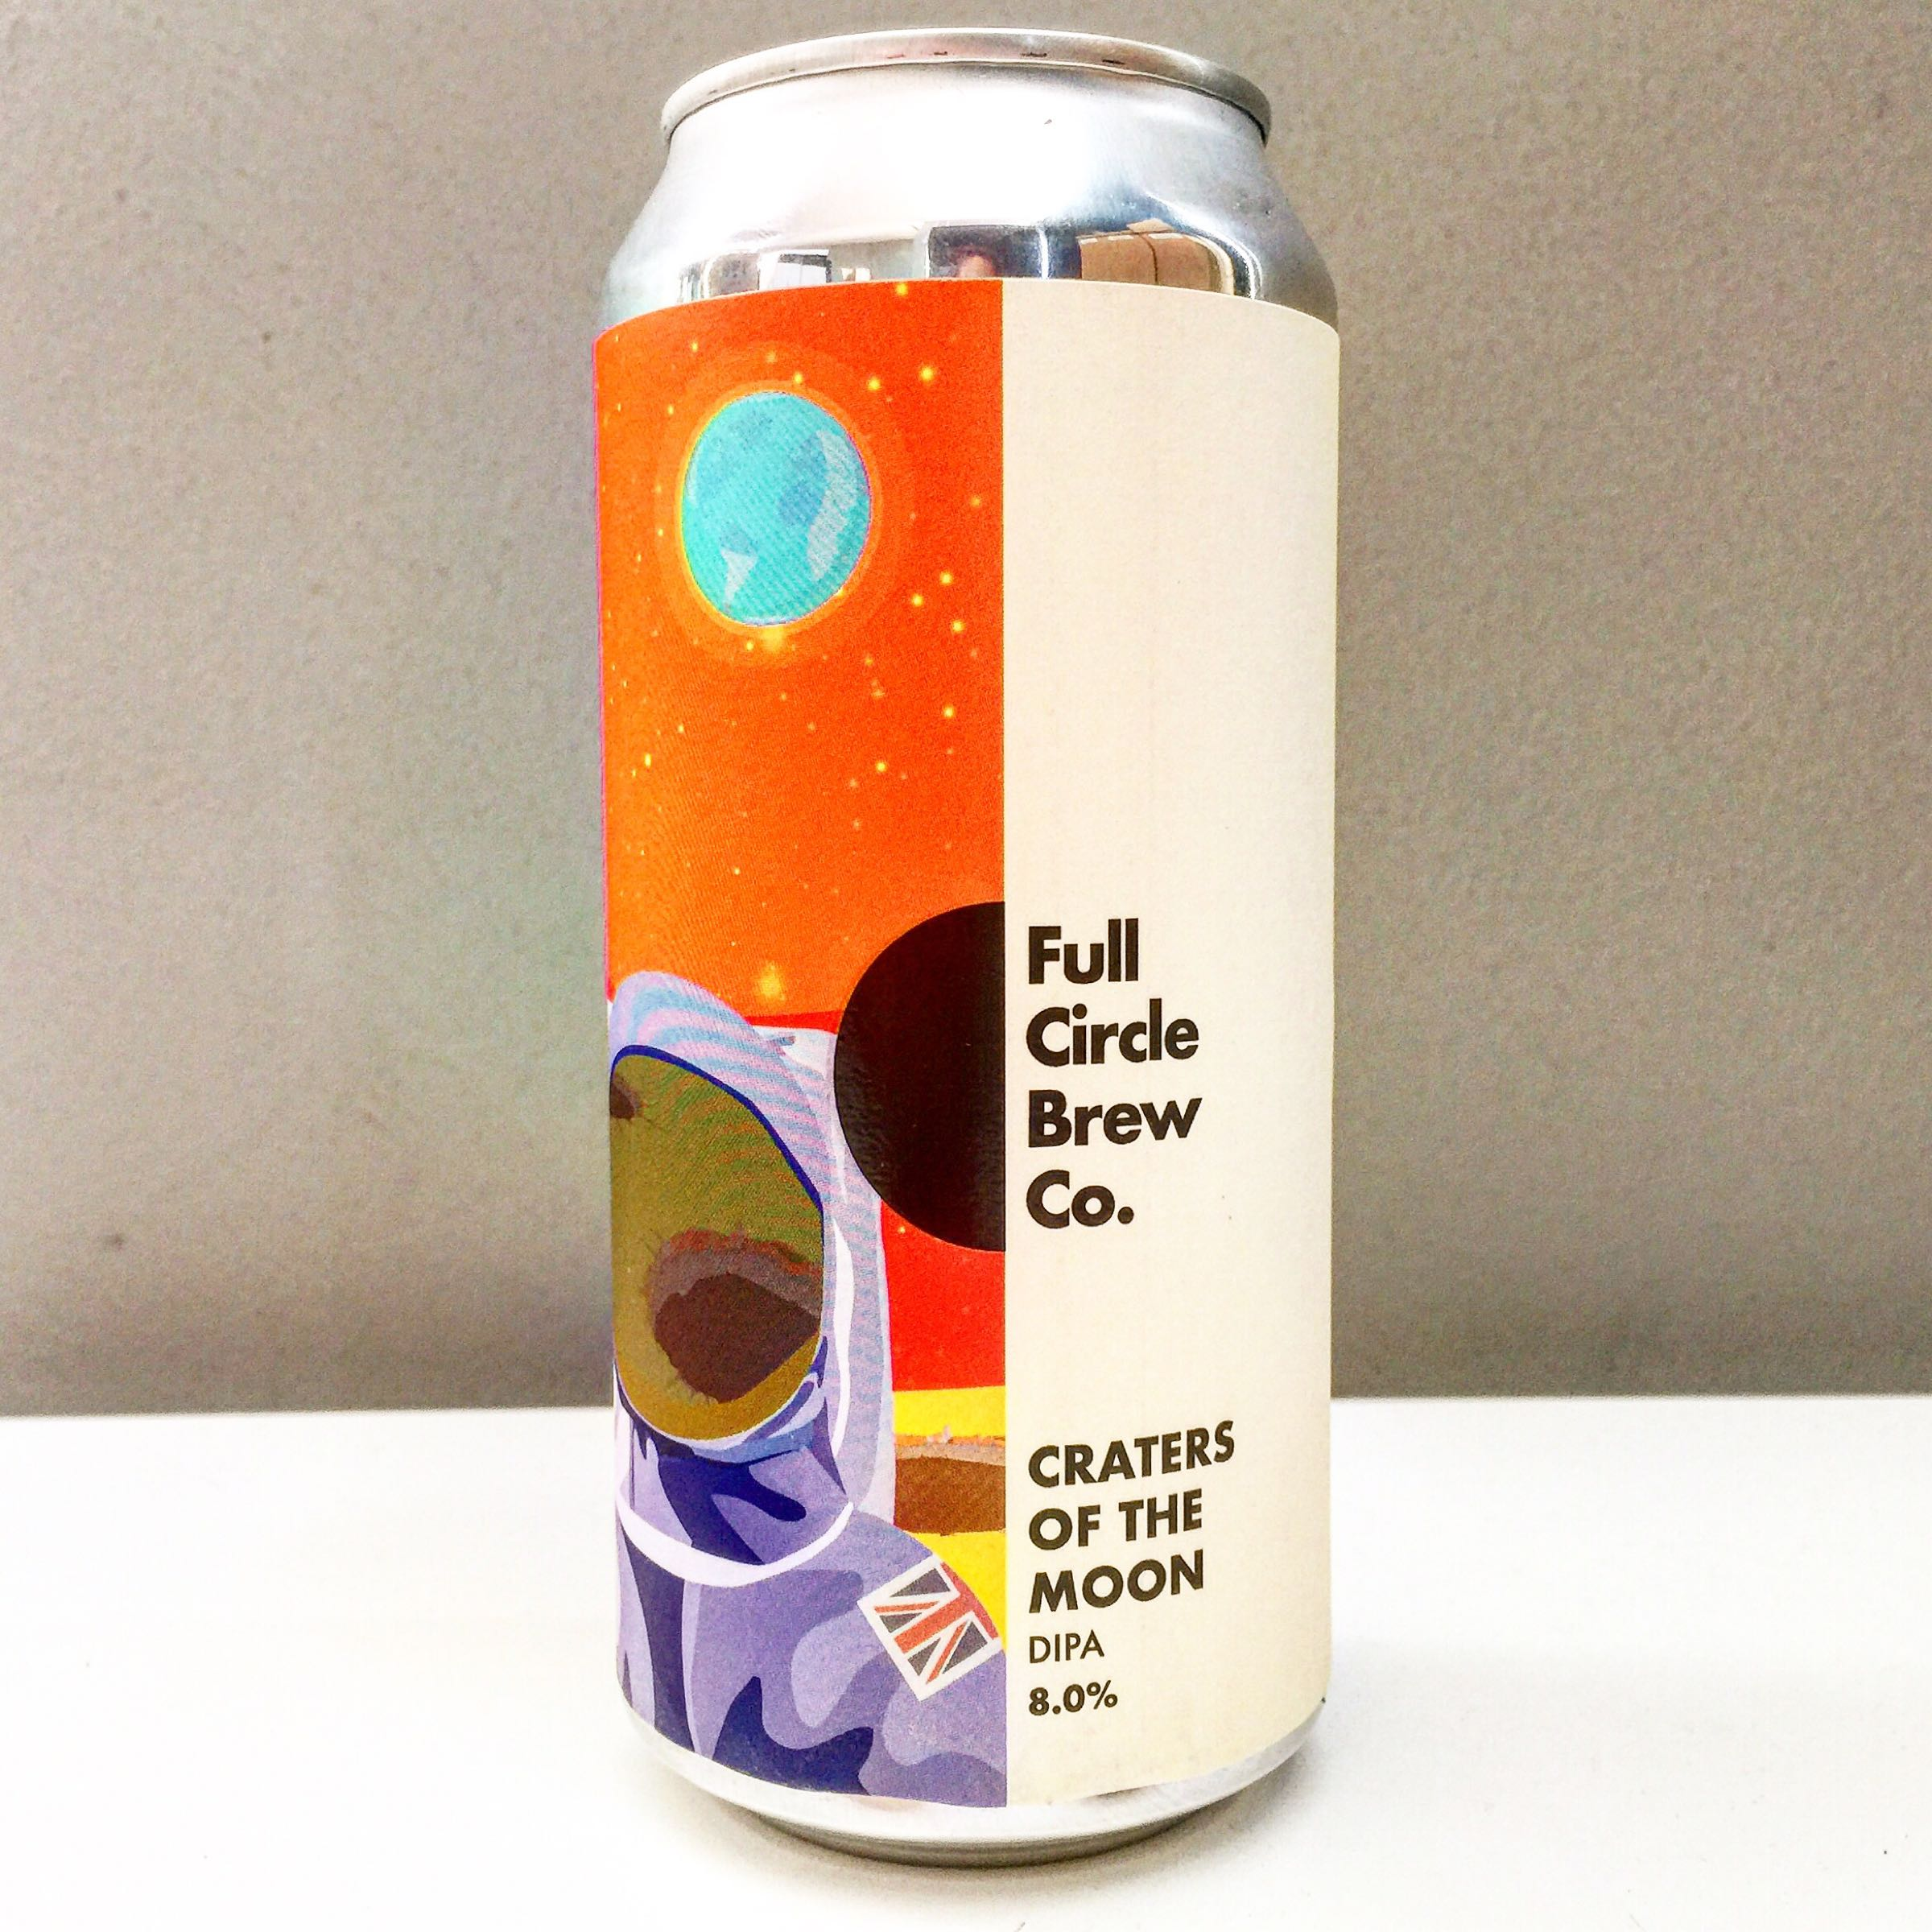 Full Circle Brew Co. 'Craters of the Moon' DIPA 440ml 8.0% ABV